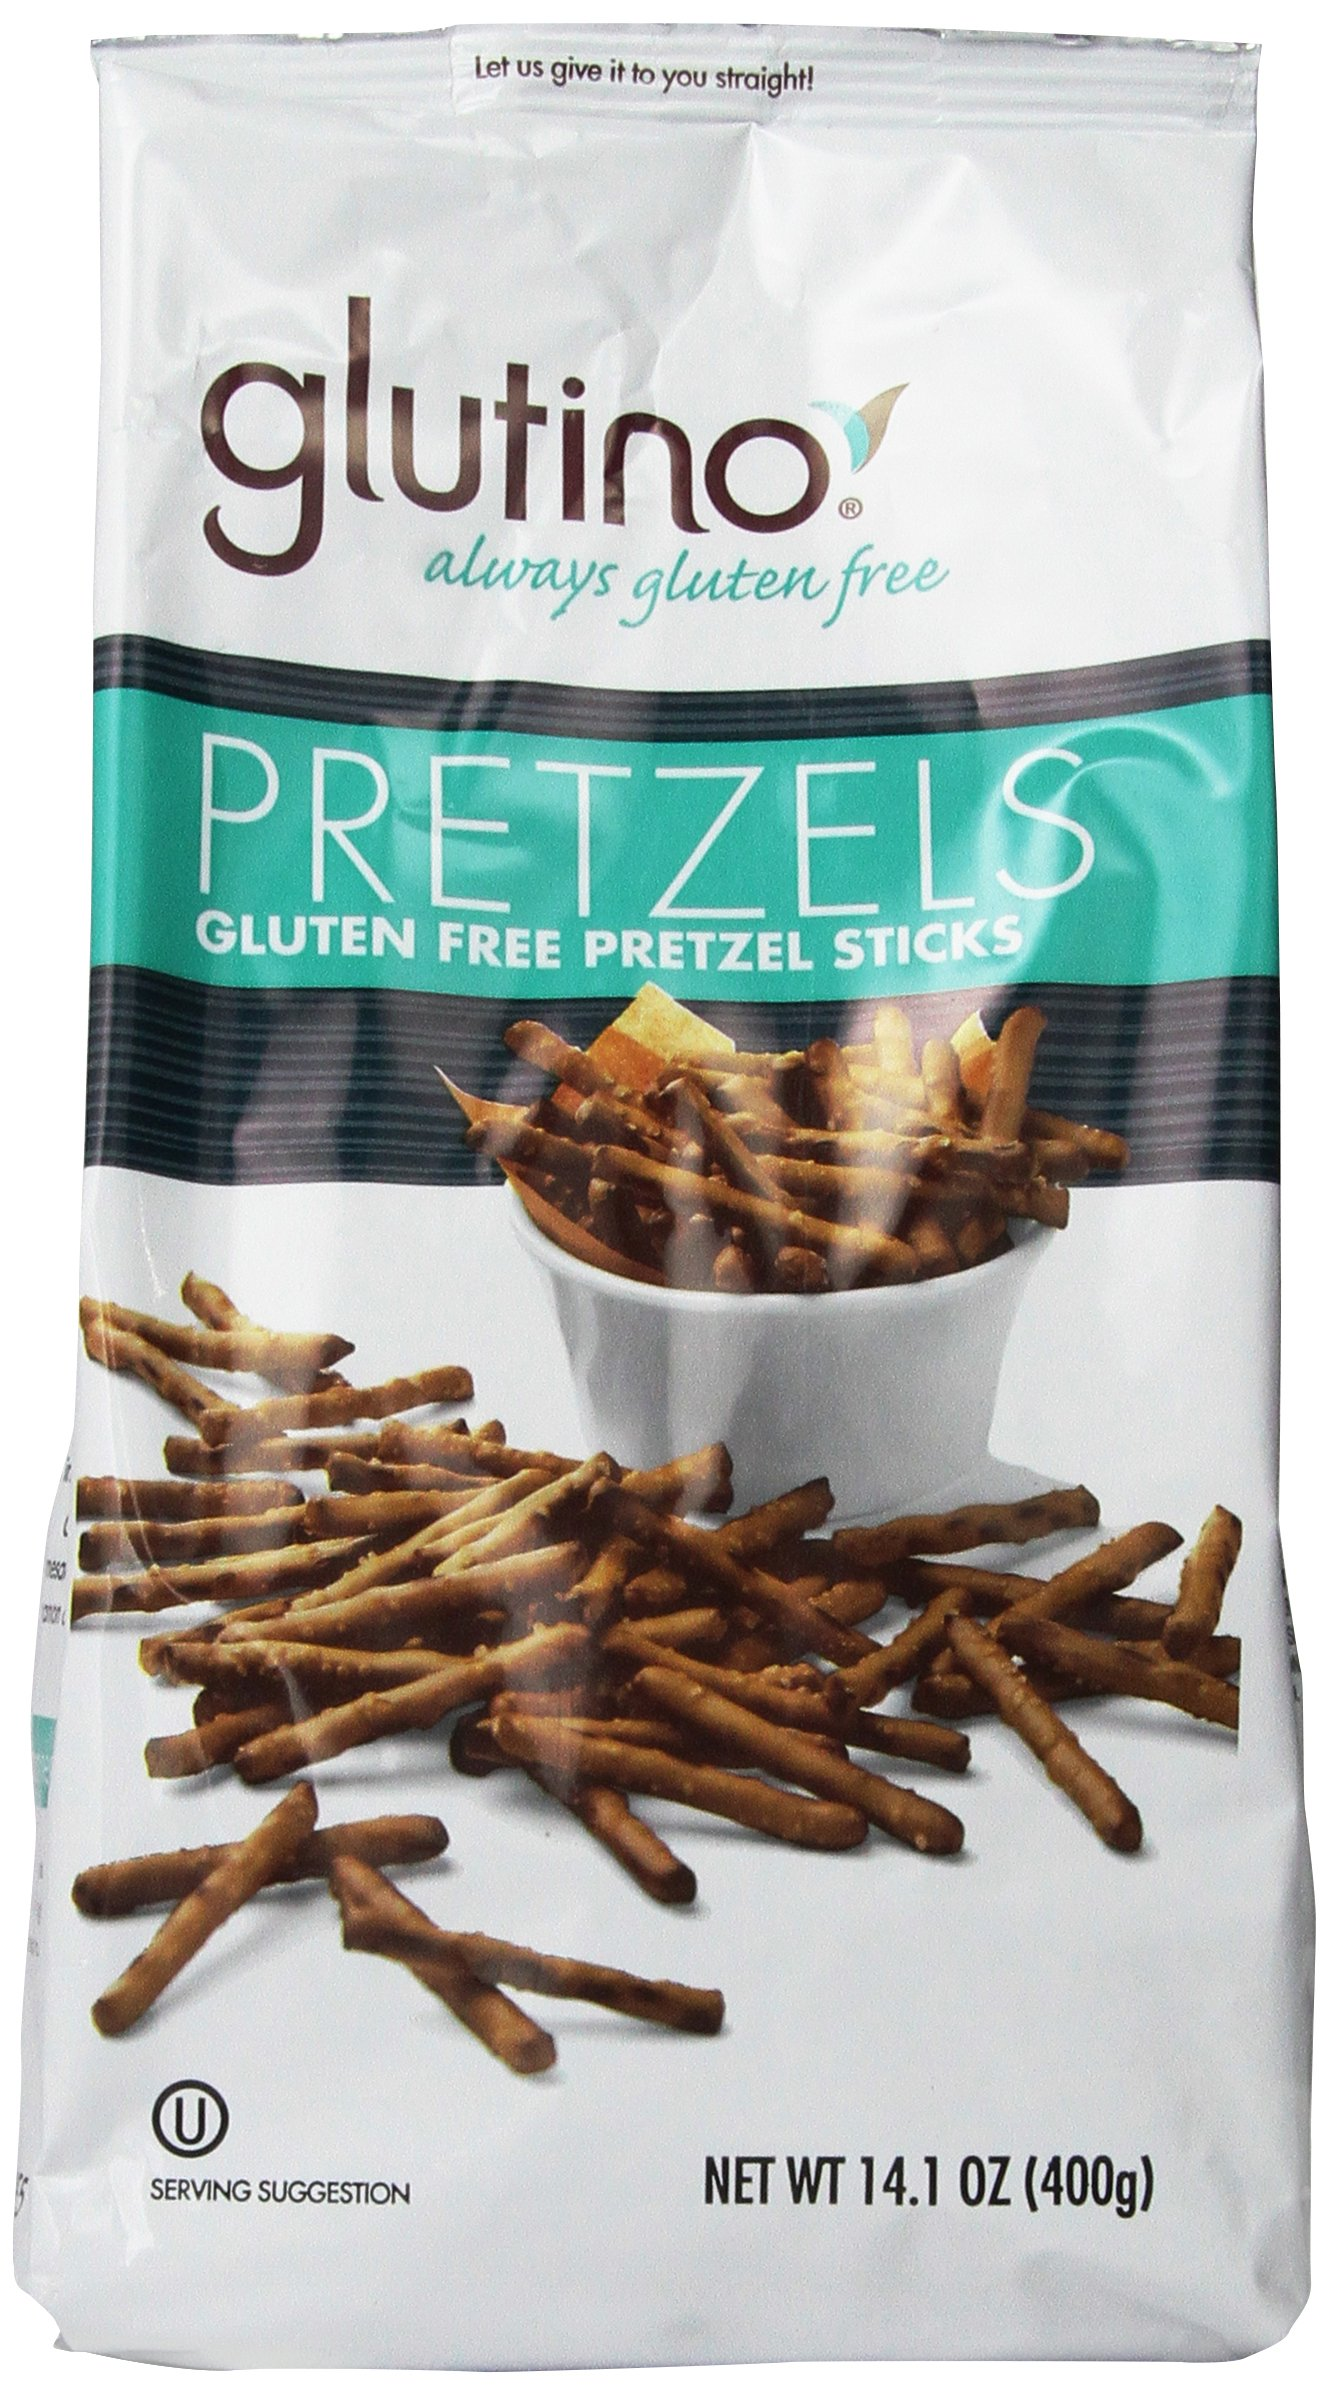 Glutino Gluten Free Pretzel Sticks, 14.1-Ounce Bags (Pack of 12) by Glutino (Image #1)